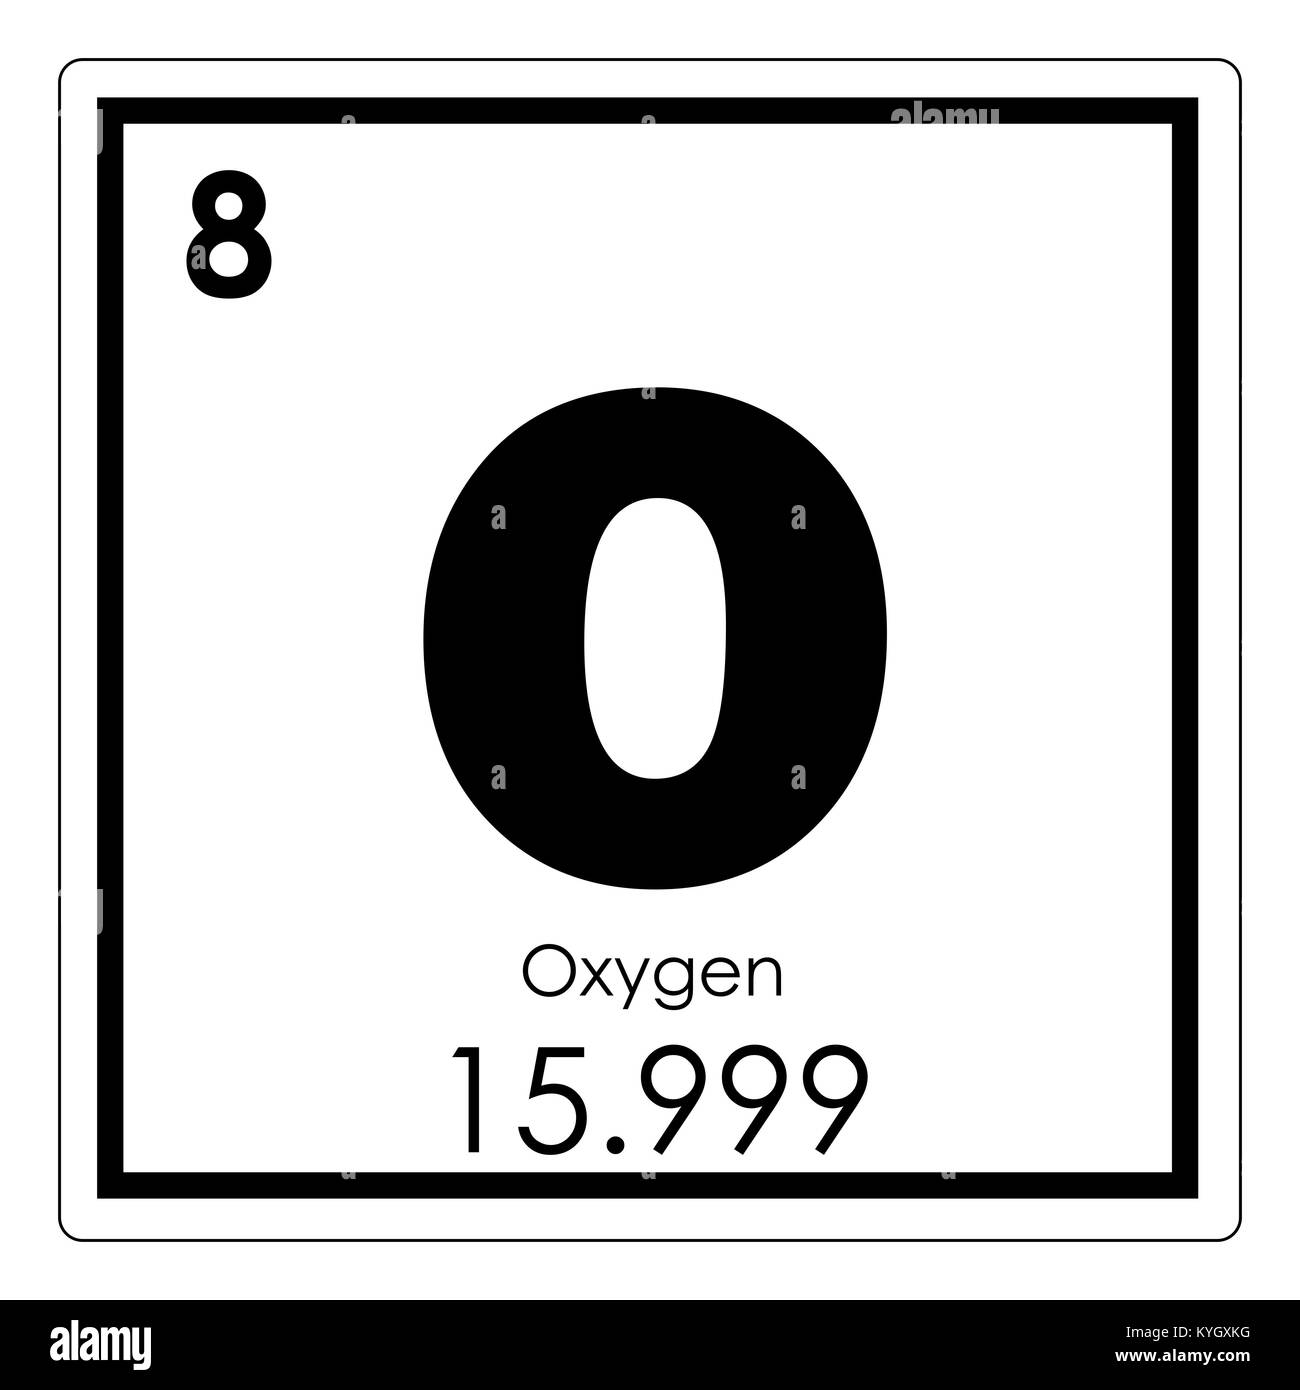 Oxygen chemical element periodic table science symbol stock photo oxygen chemical element periodic table science symbol urtaz Images